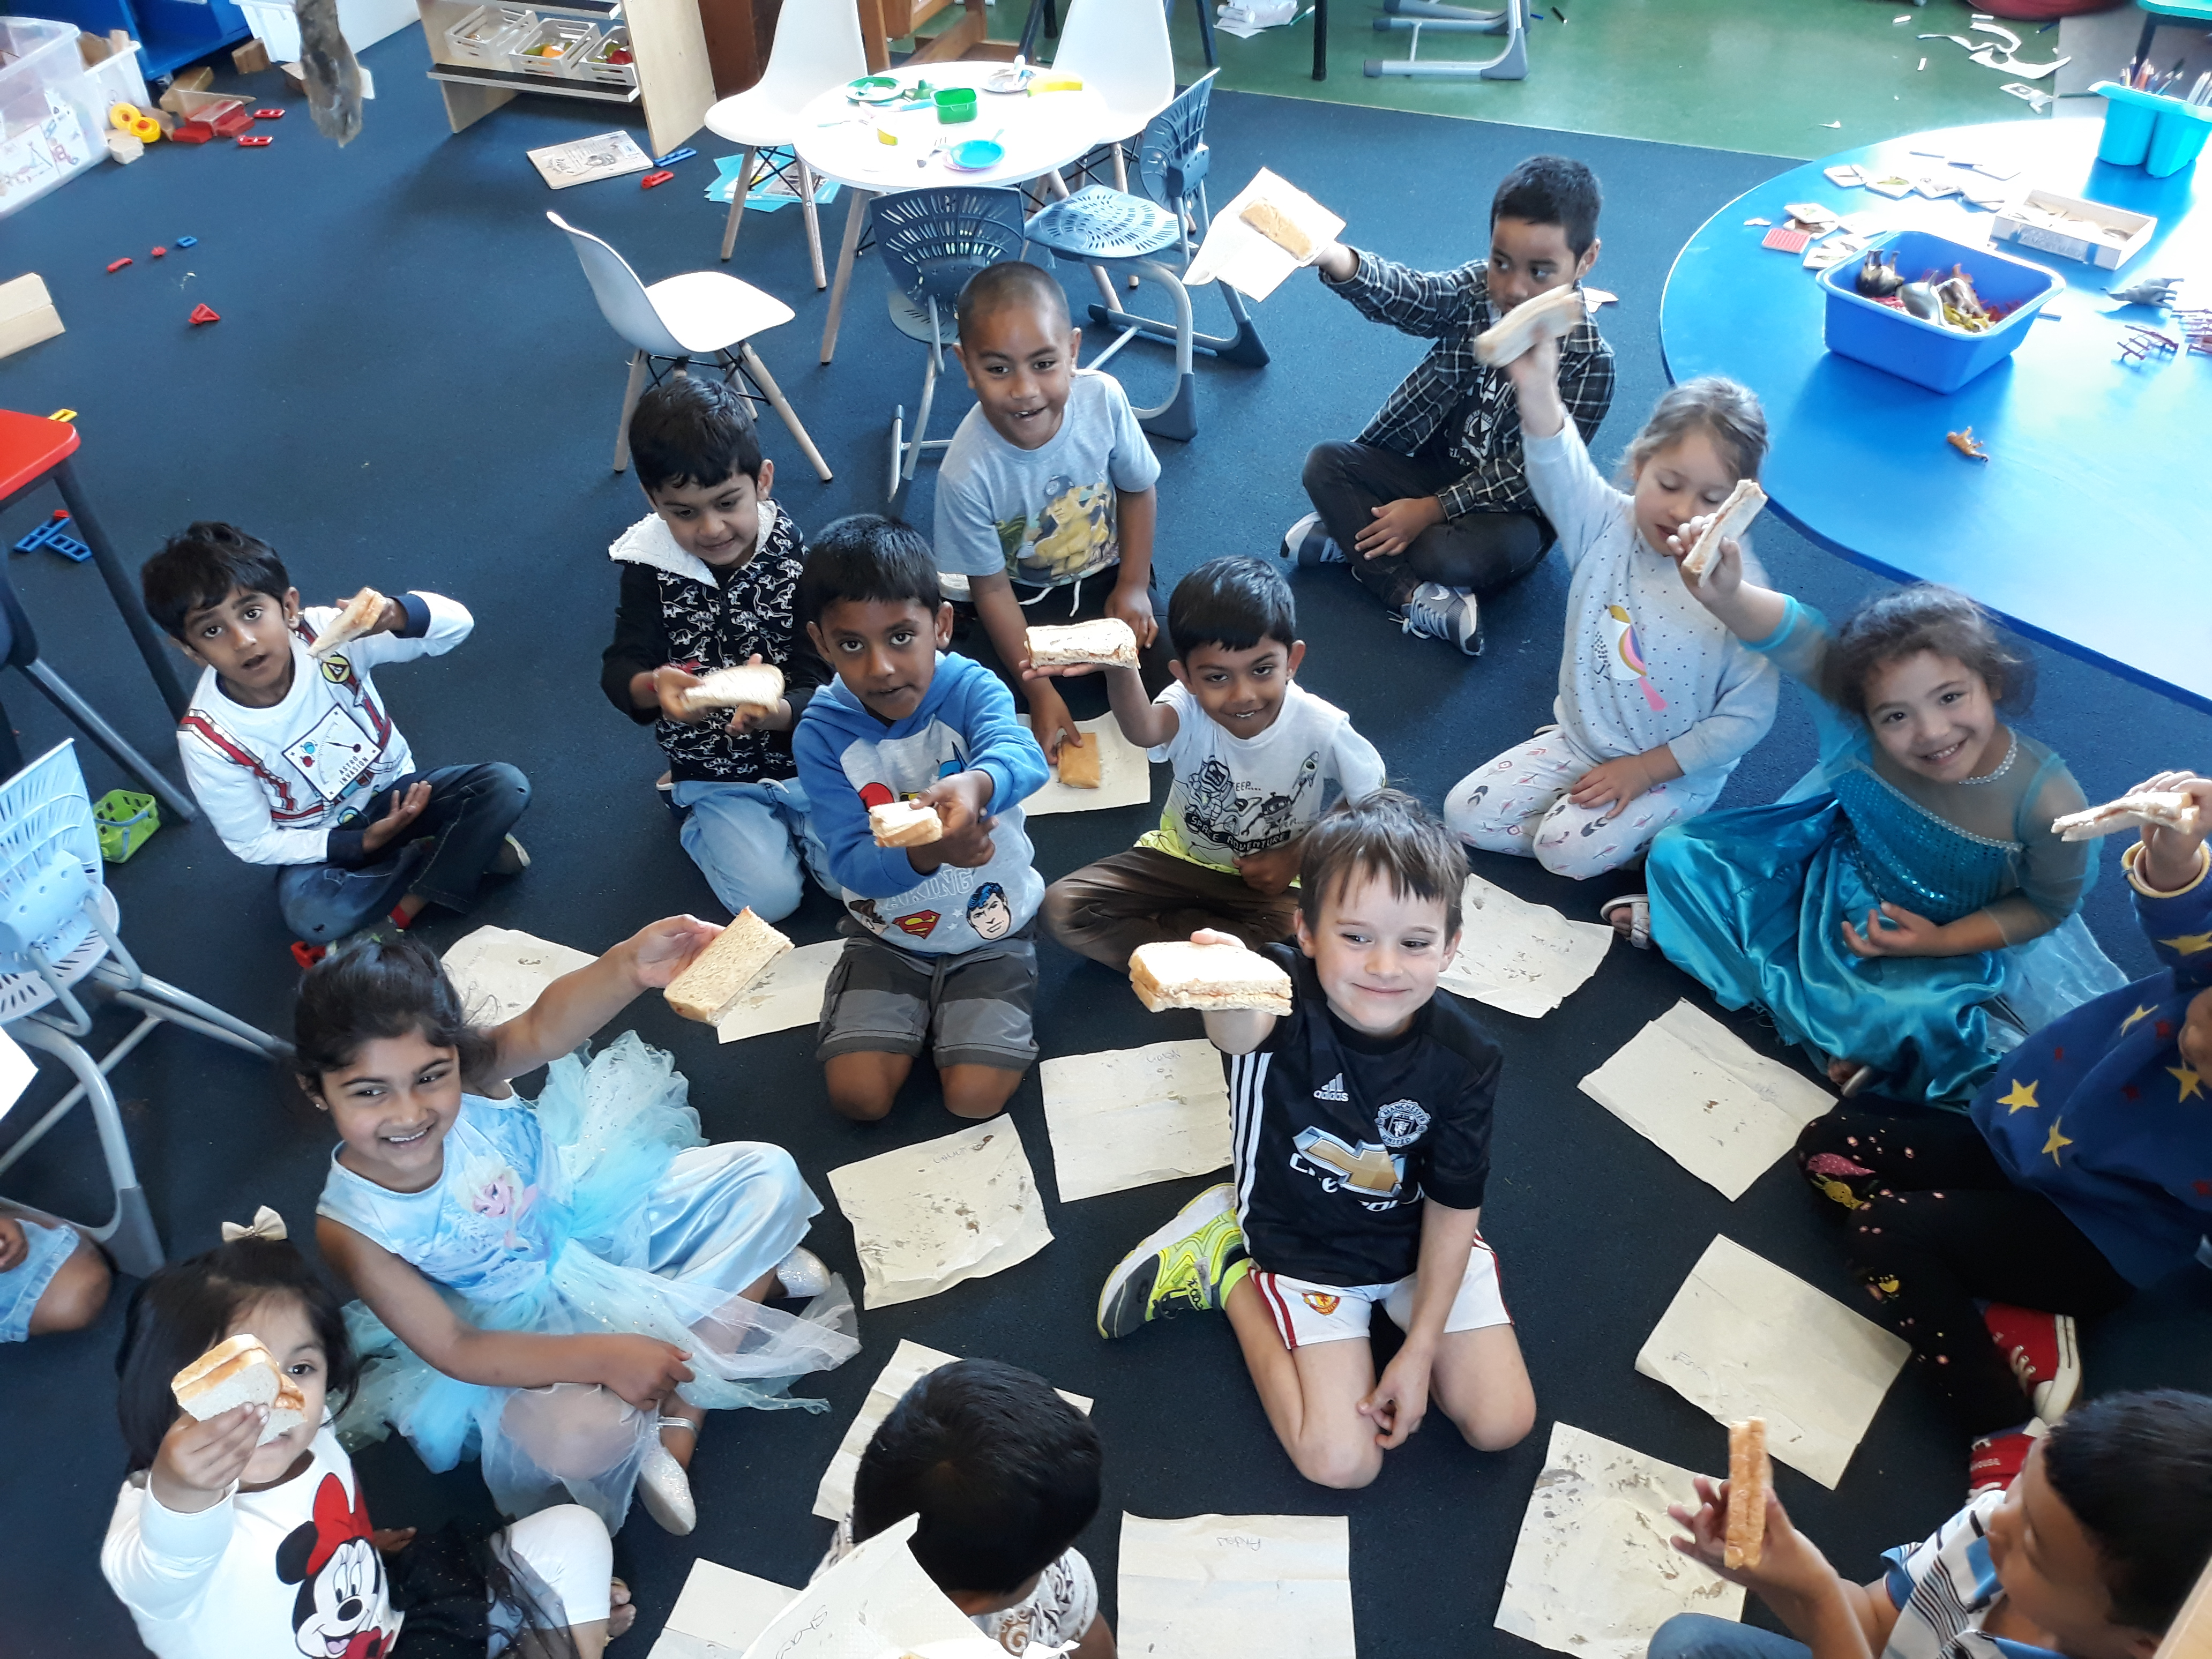 Blockhouse Bay Primary School - Fun with fractions in Room 1